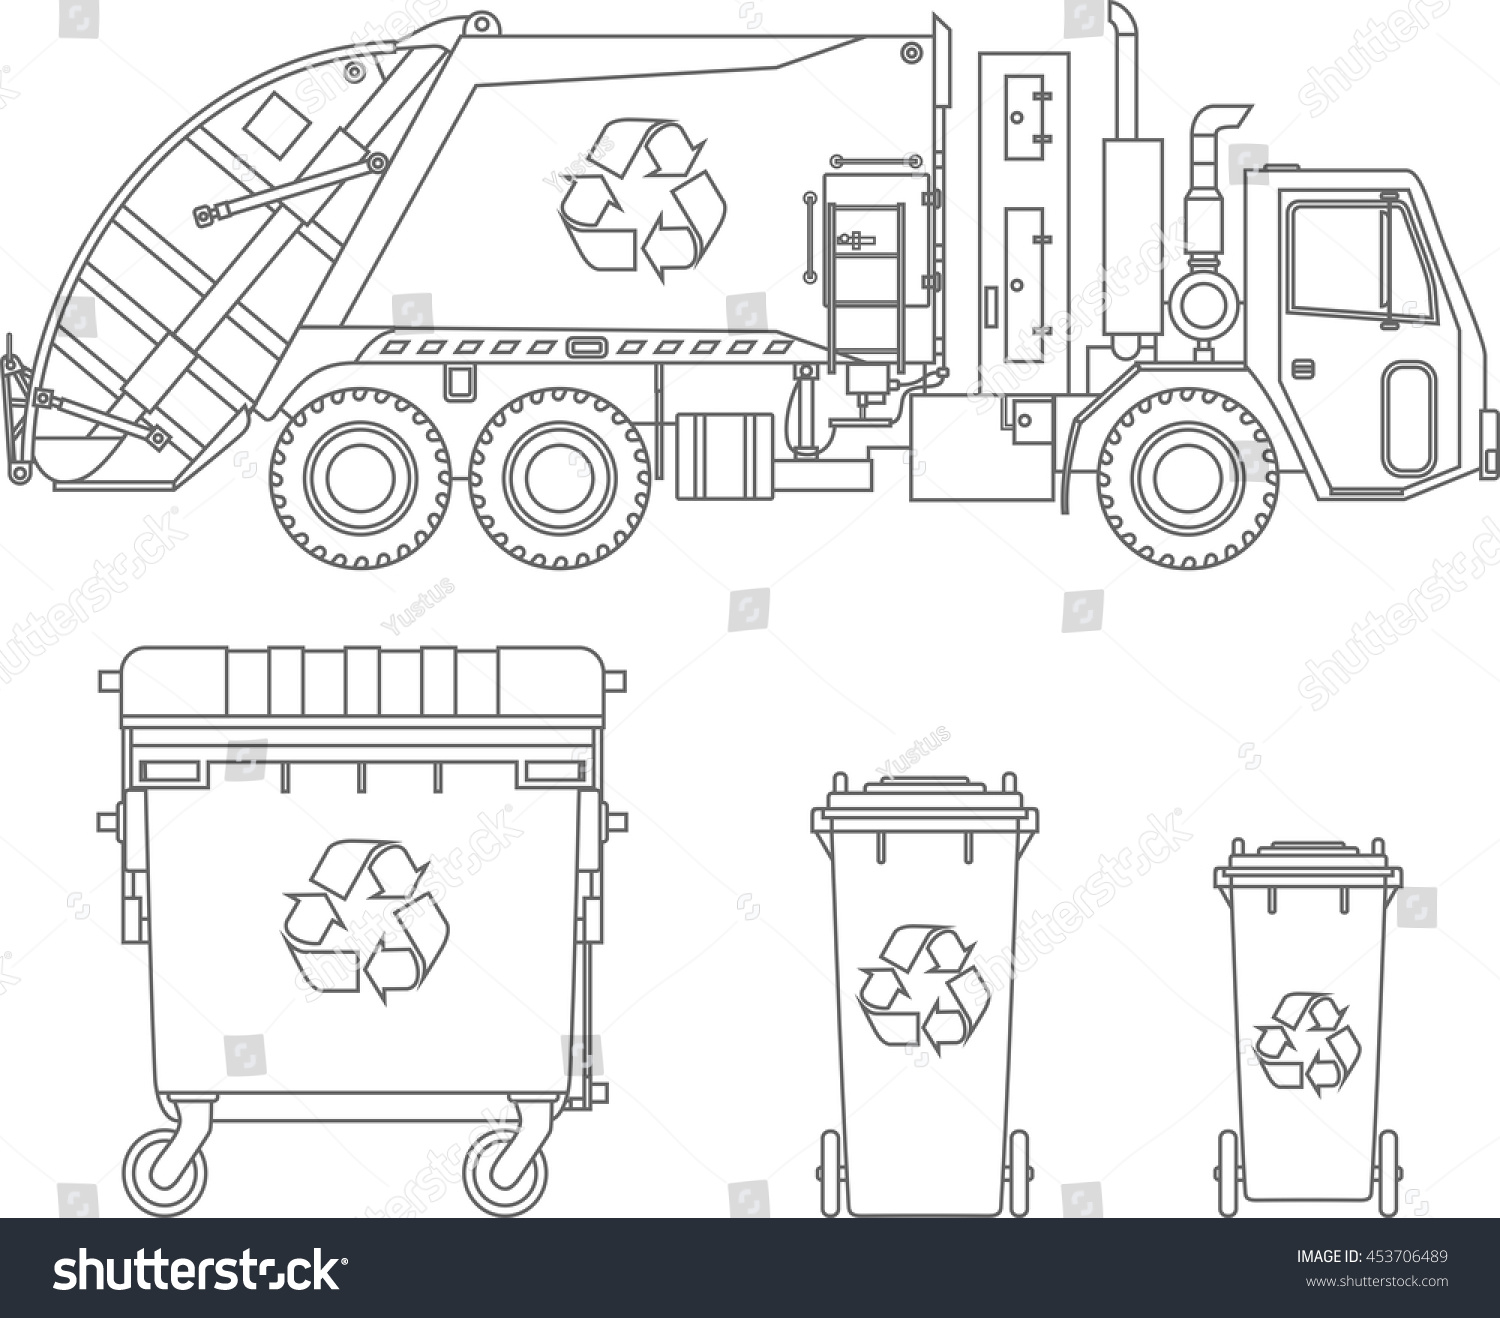 Garbage truck coloring book -  Trash Truck Coloring Pages Coloring Pages Set Garbage Truck Different Stock Vector 453706489